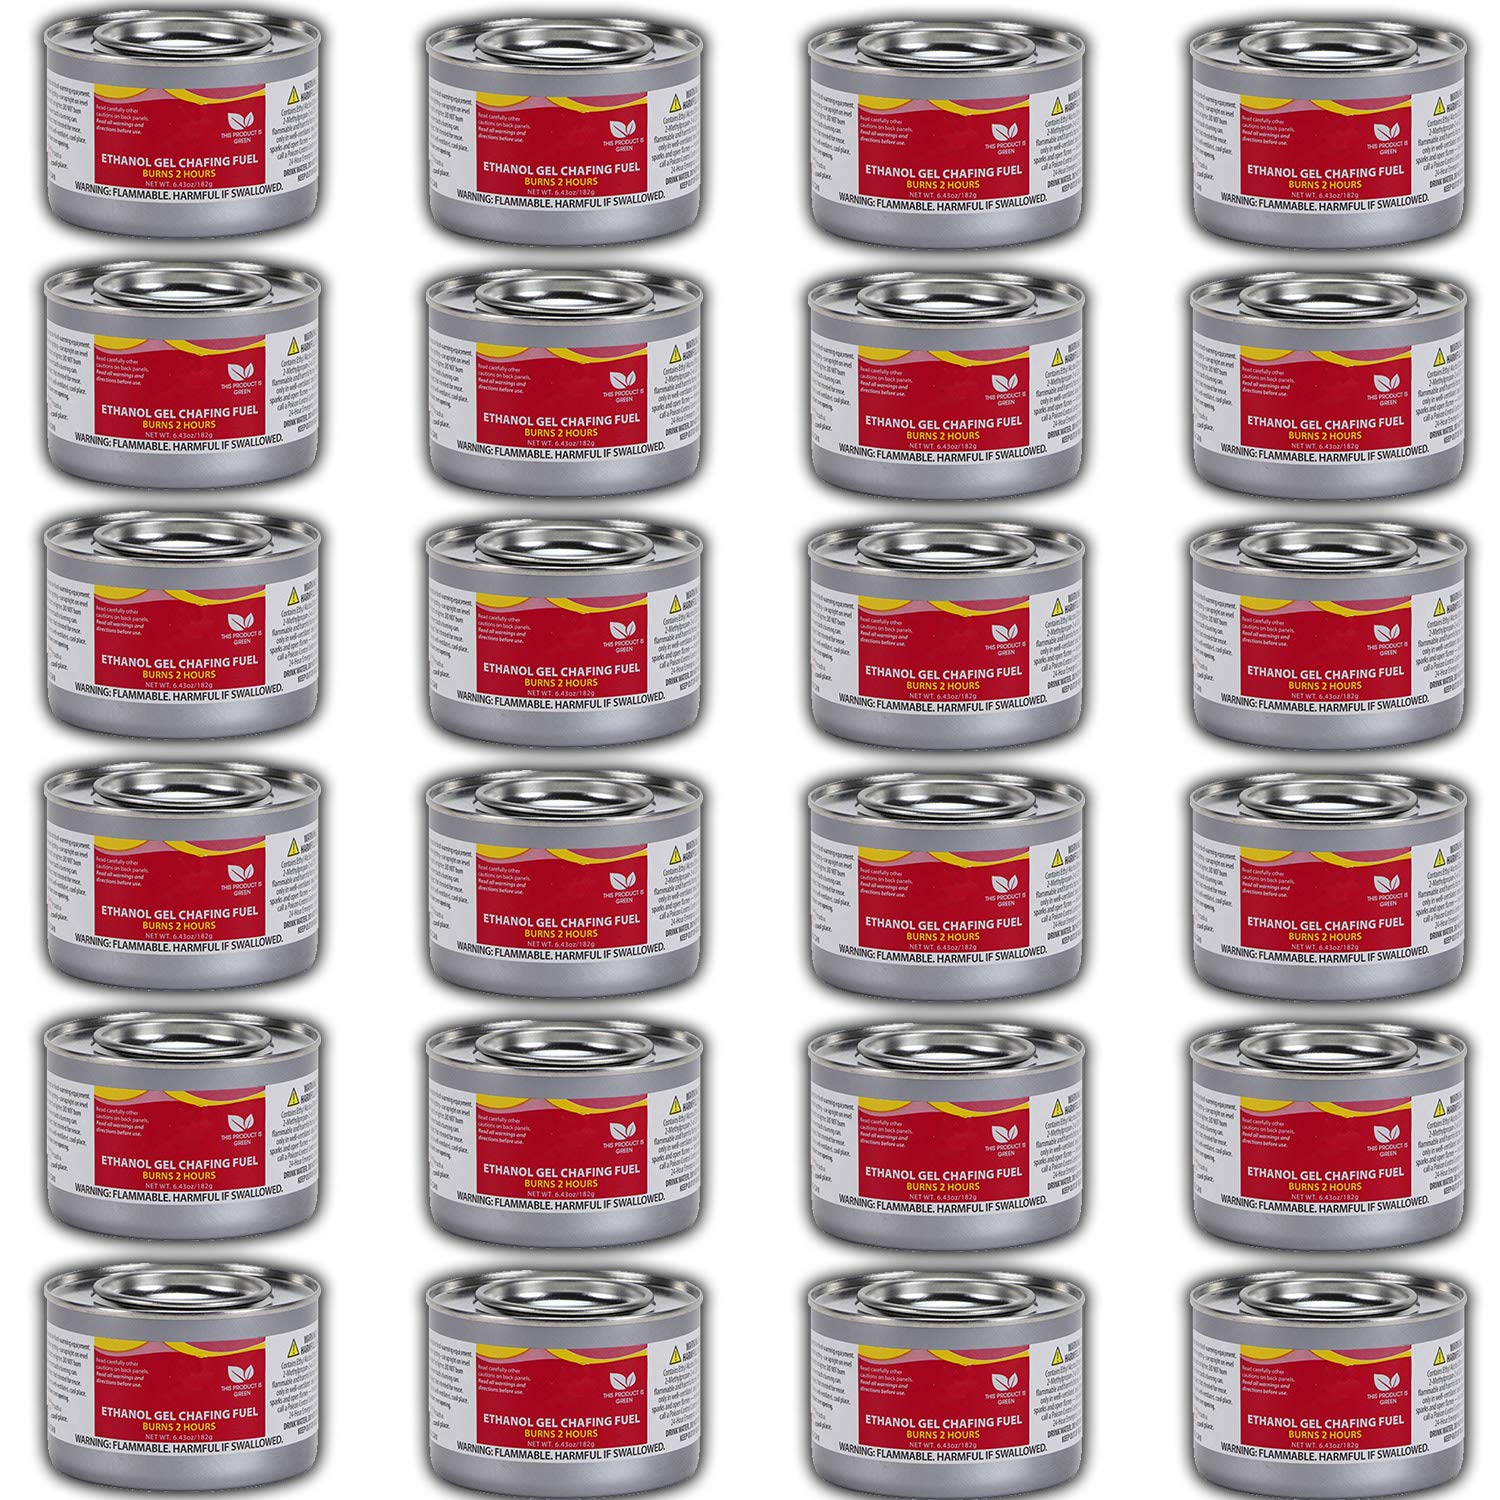 Chafing Dish Fuel Cans - Includes 24 Ethanol Gel Chafing Fuels, Burns for 2 Hours (6.43 OZ) for your Cooking, Food Warming, Buffet and Parties. by HeroFiber